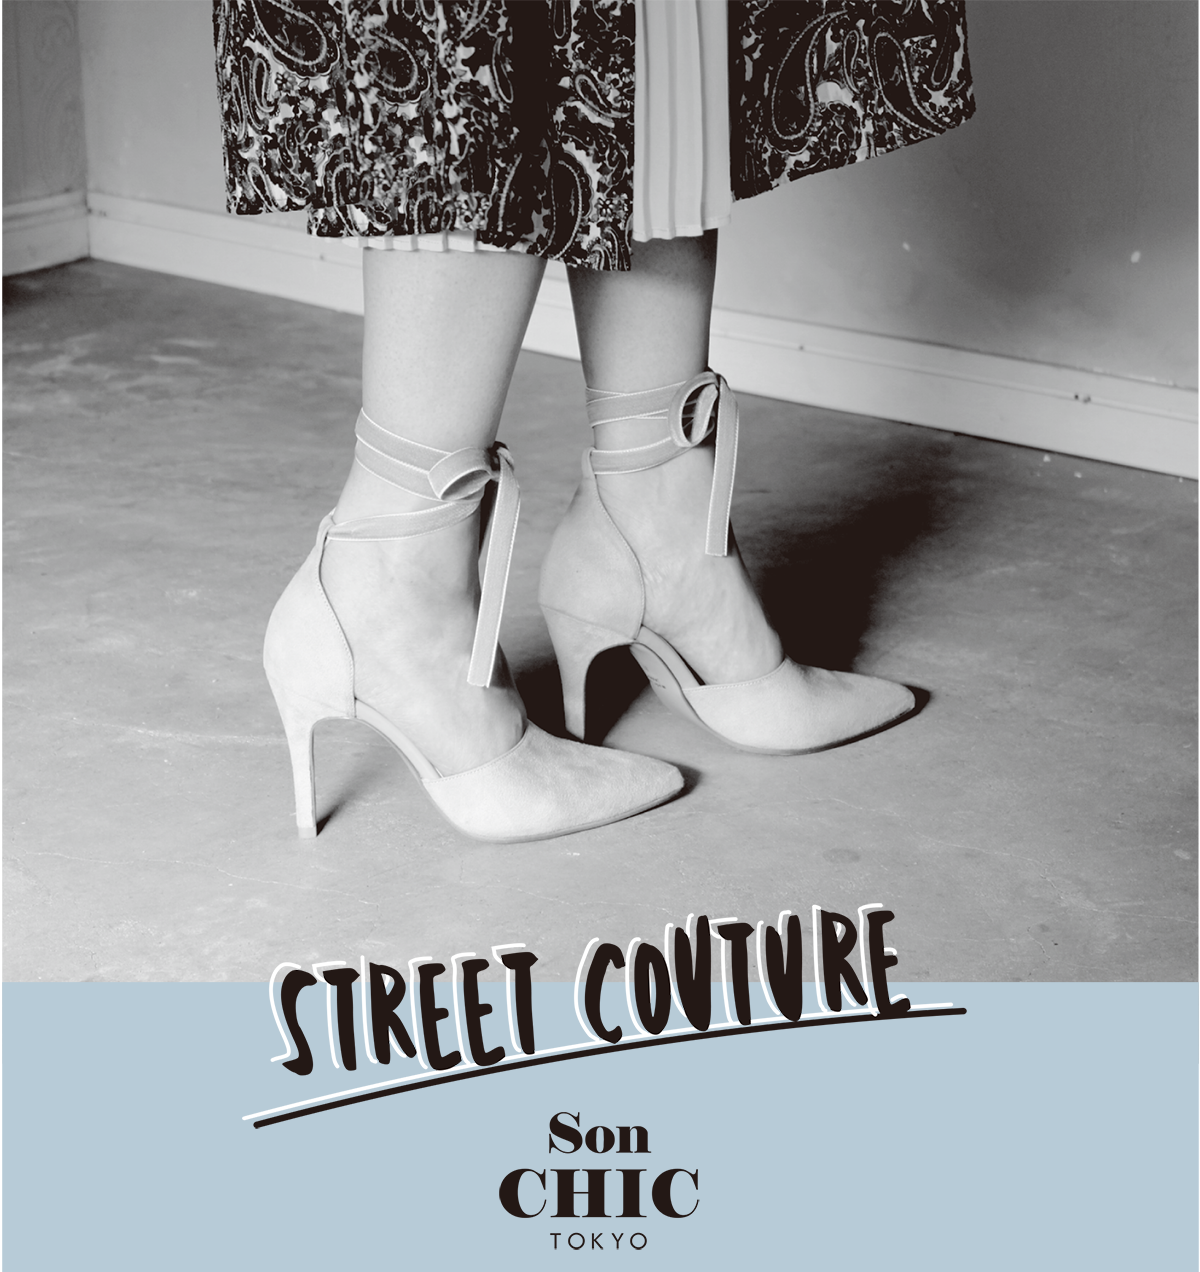 street_couture Son CHIC TOKYO